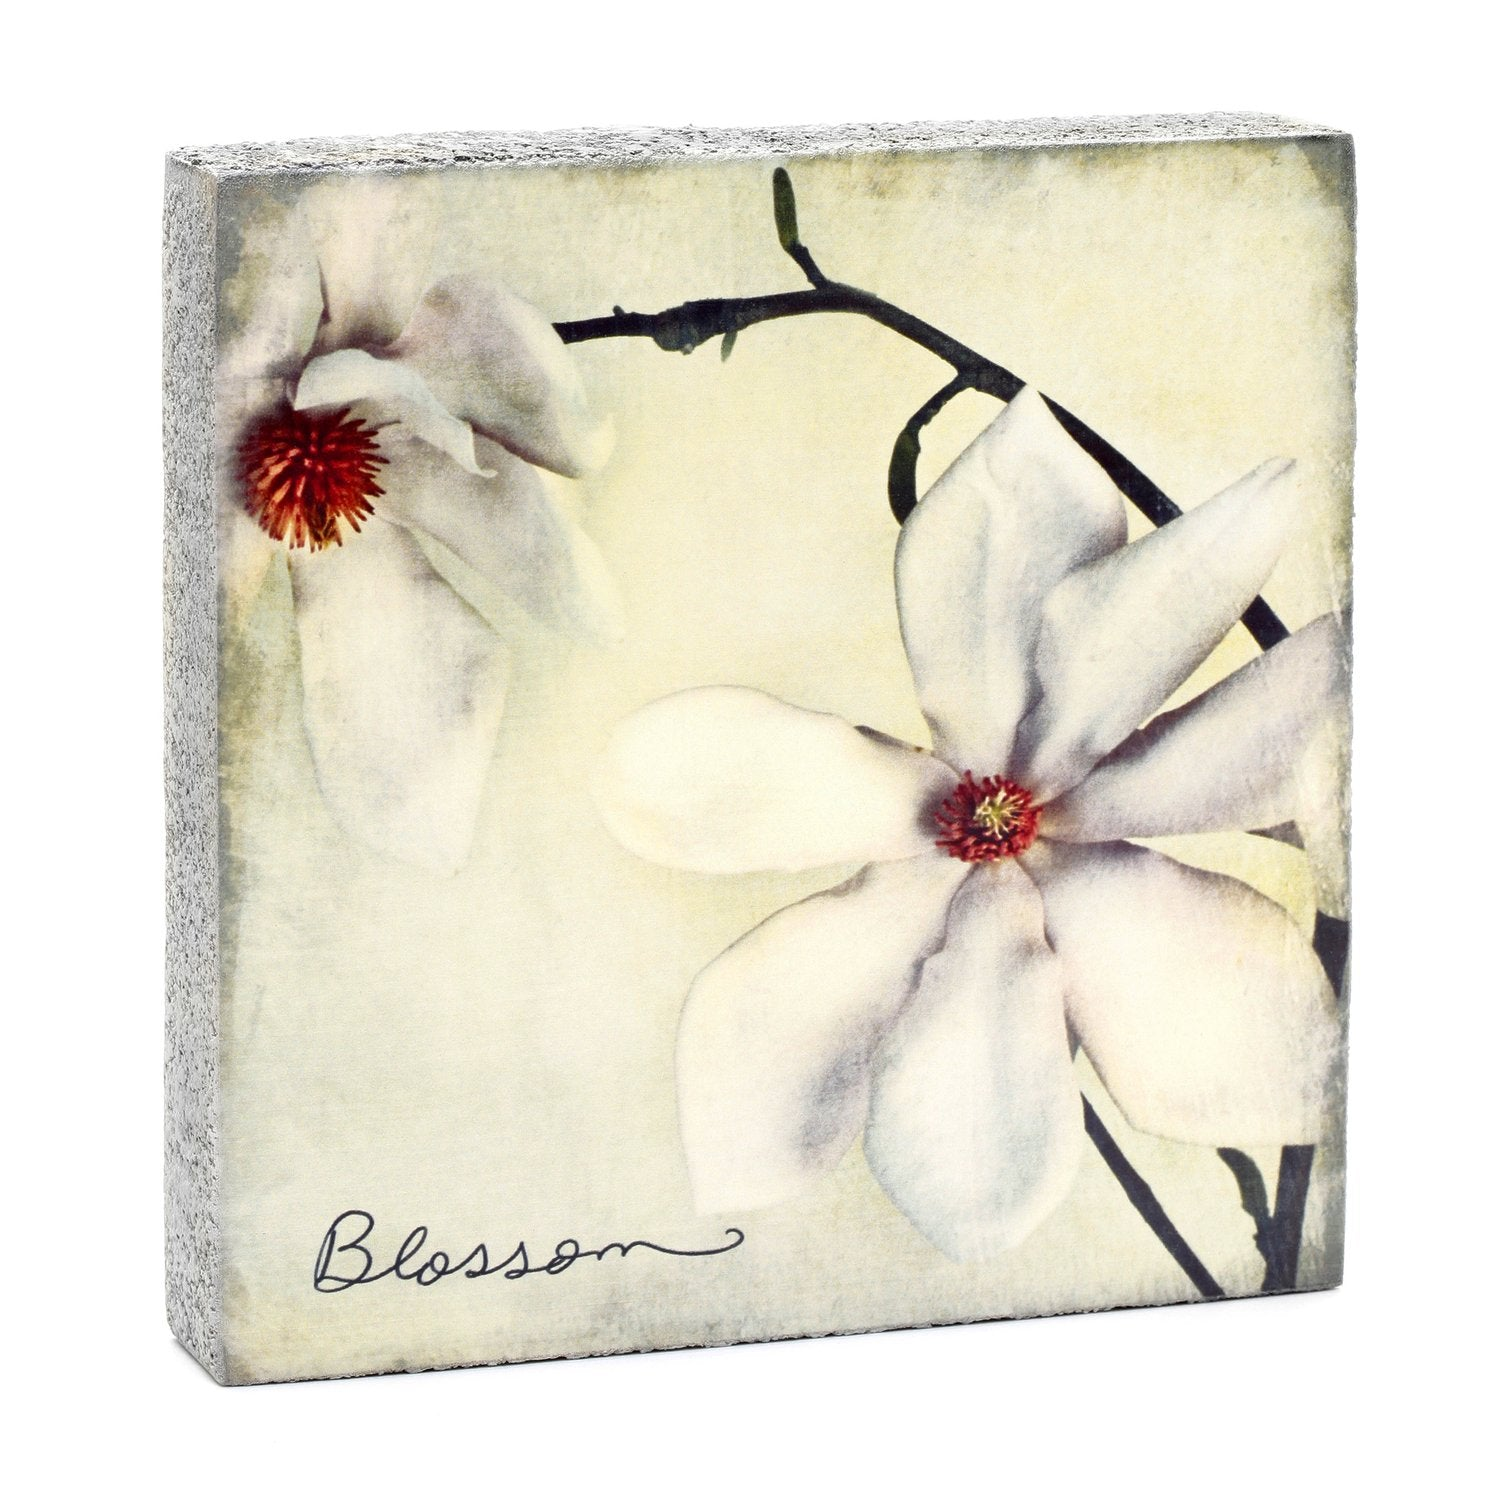 Art Block Mini - Blossom